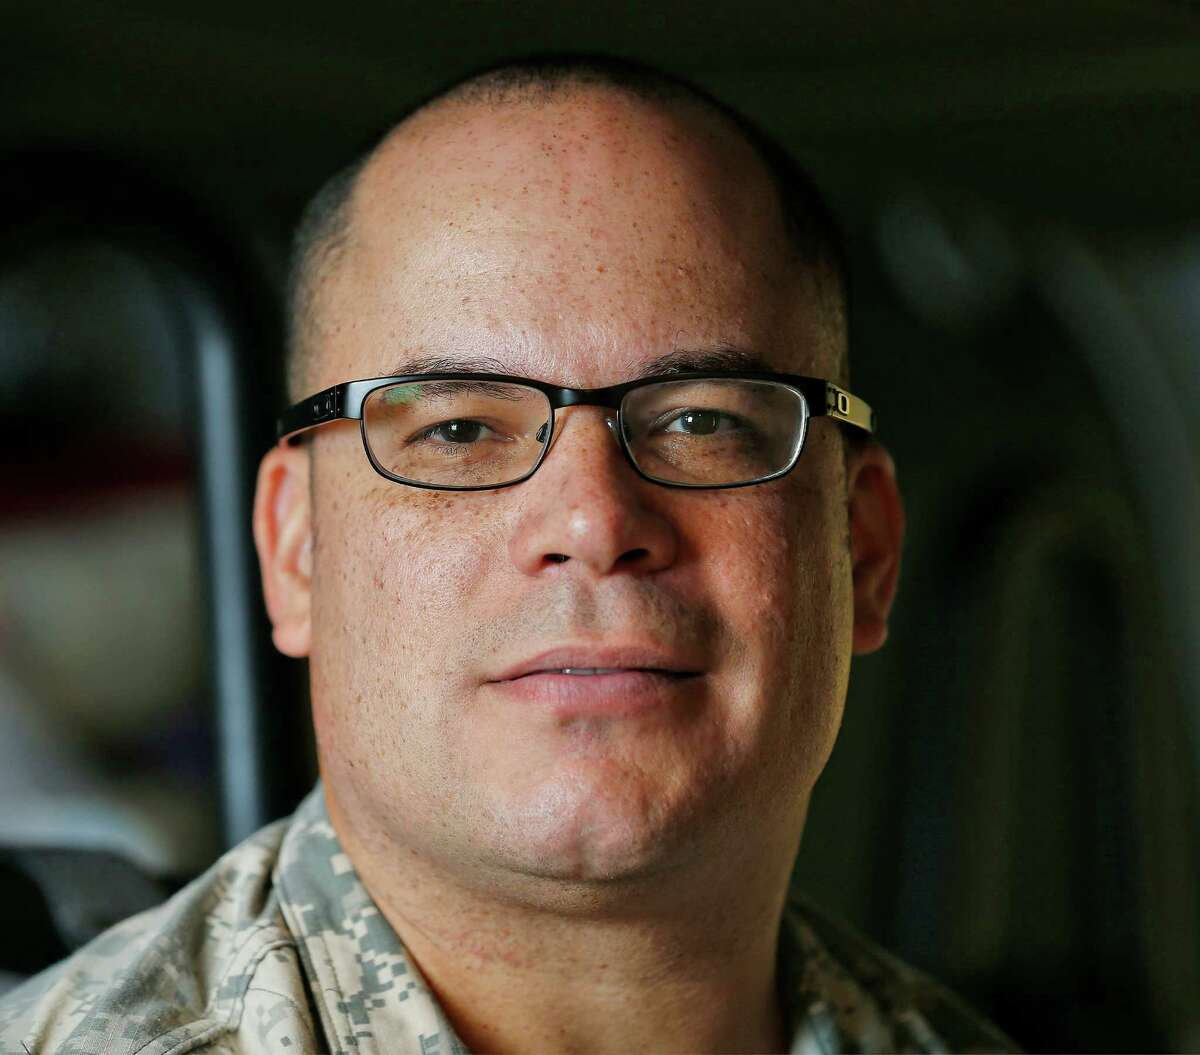 Maj. Mario Rivera has served in the U.S. Army since 9/11 and remain on duty on the 15th anniversary of the terrorist attacks in New York City. Rivera is posted at the Army Medical Department Center and School at Joint Base San Antonio - Fort Sam Houston. (Kin Man Hui/San Antonio Express-News)